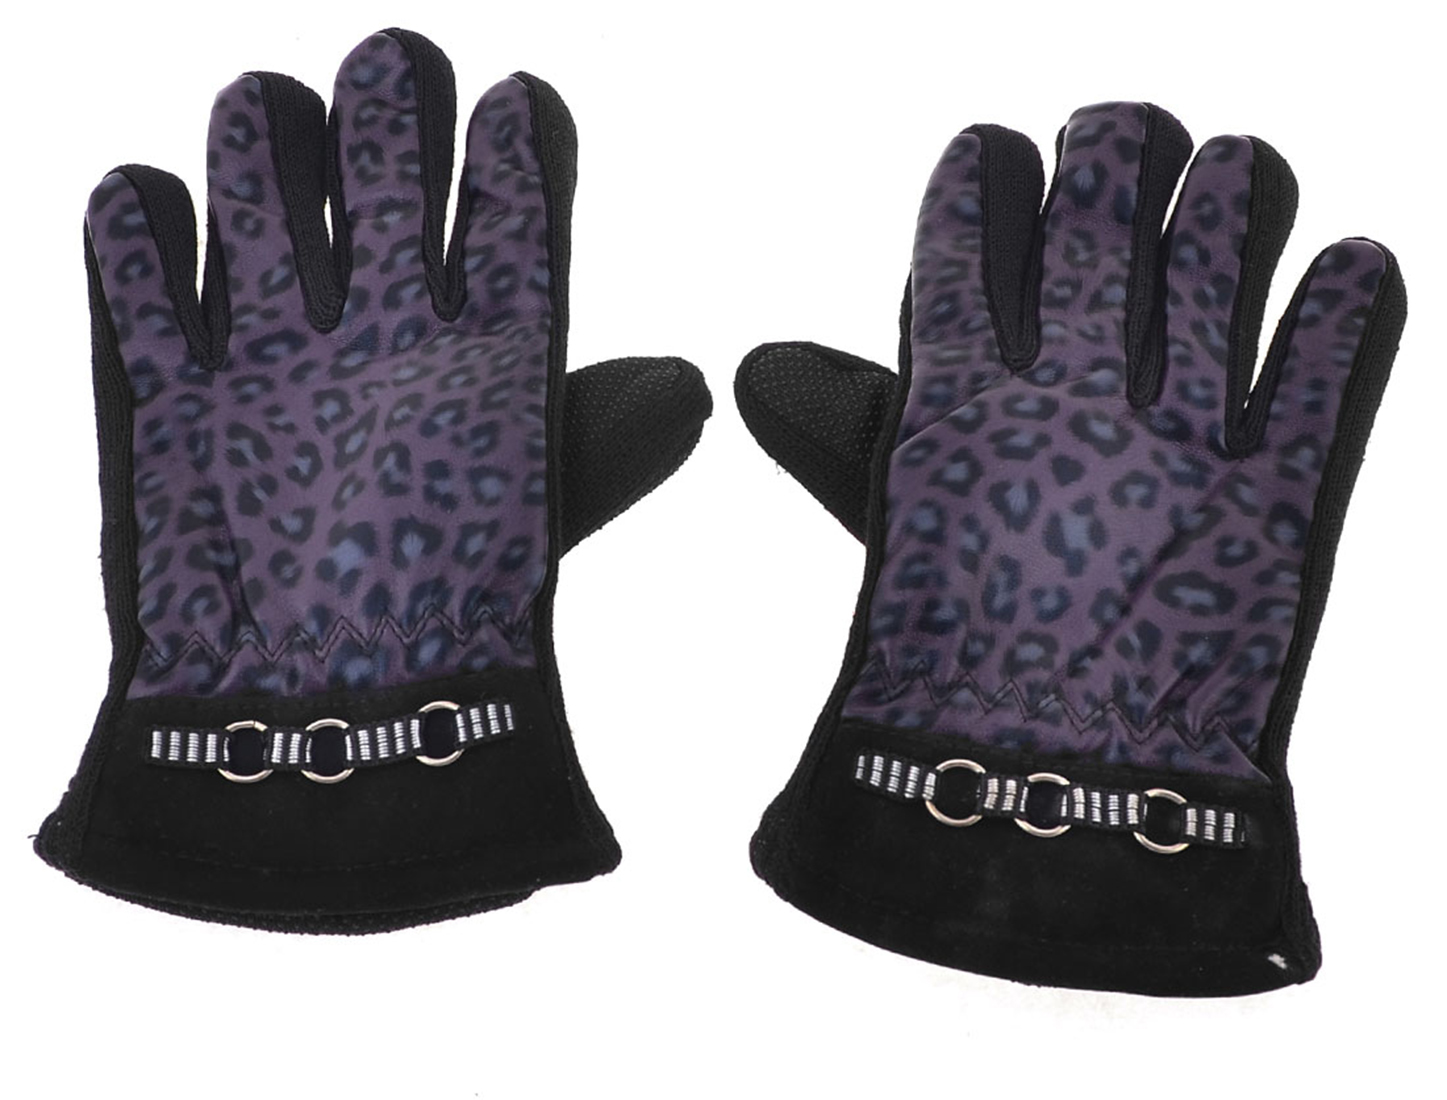 Pair Leopard Prints Faux Leather Full Finger Winter Gloves Purple for Lady